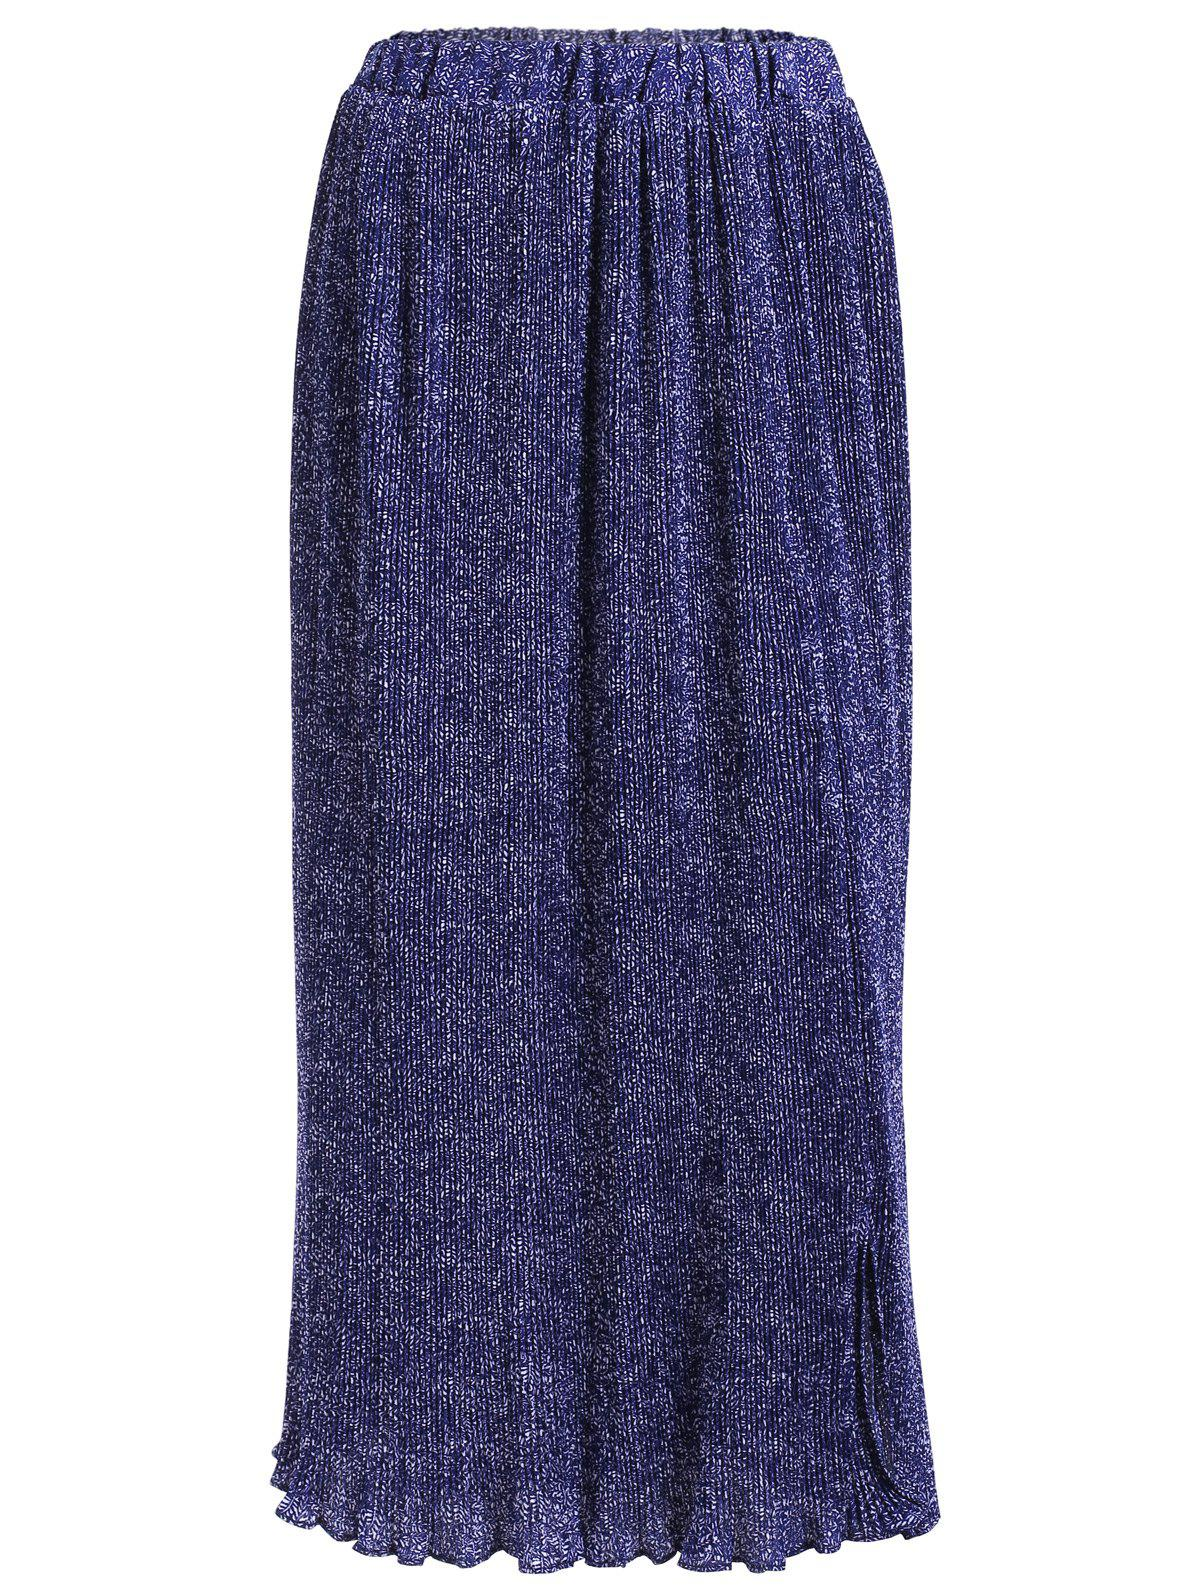 Bohemian Women's Tiny Floral Print Asymmetric Pleated Skirt - PURPLISH BLUE ONE SIZE(FIT SIZE XS TO M)